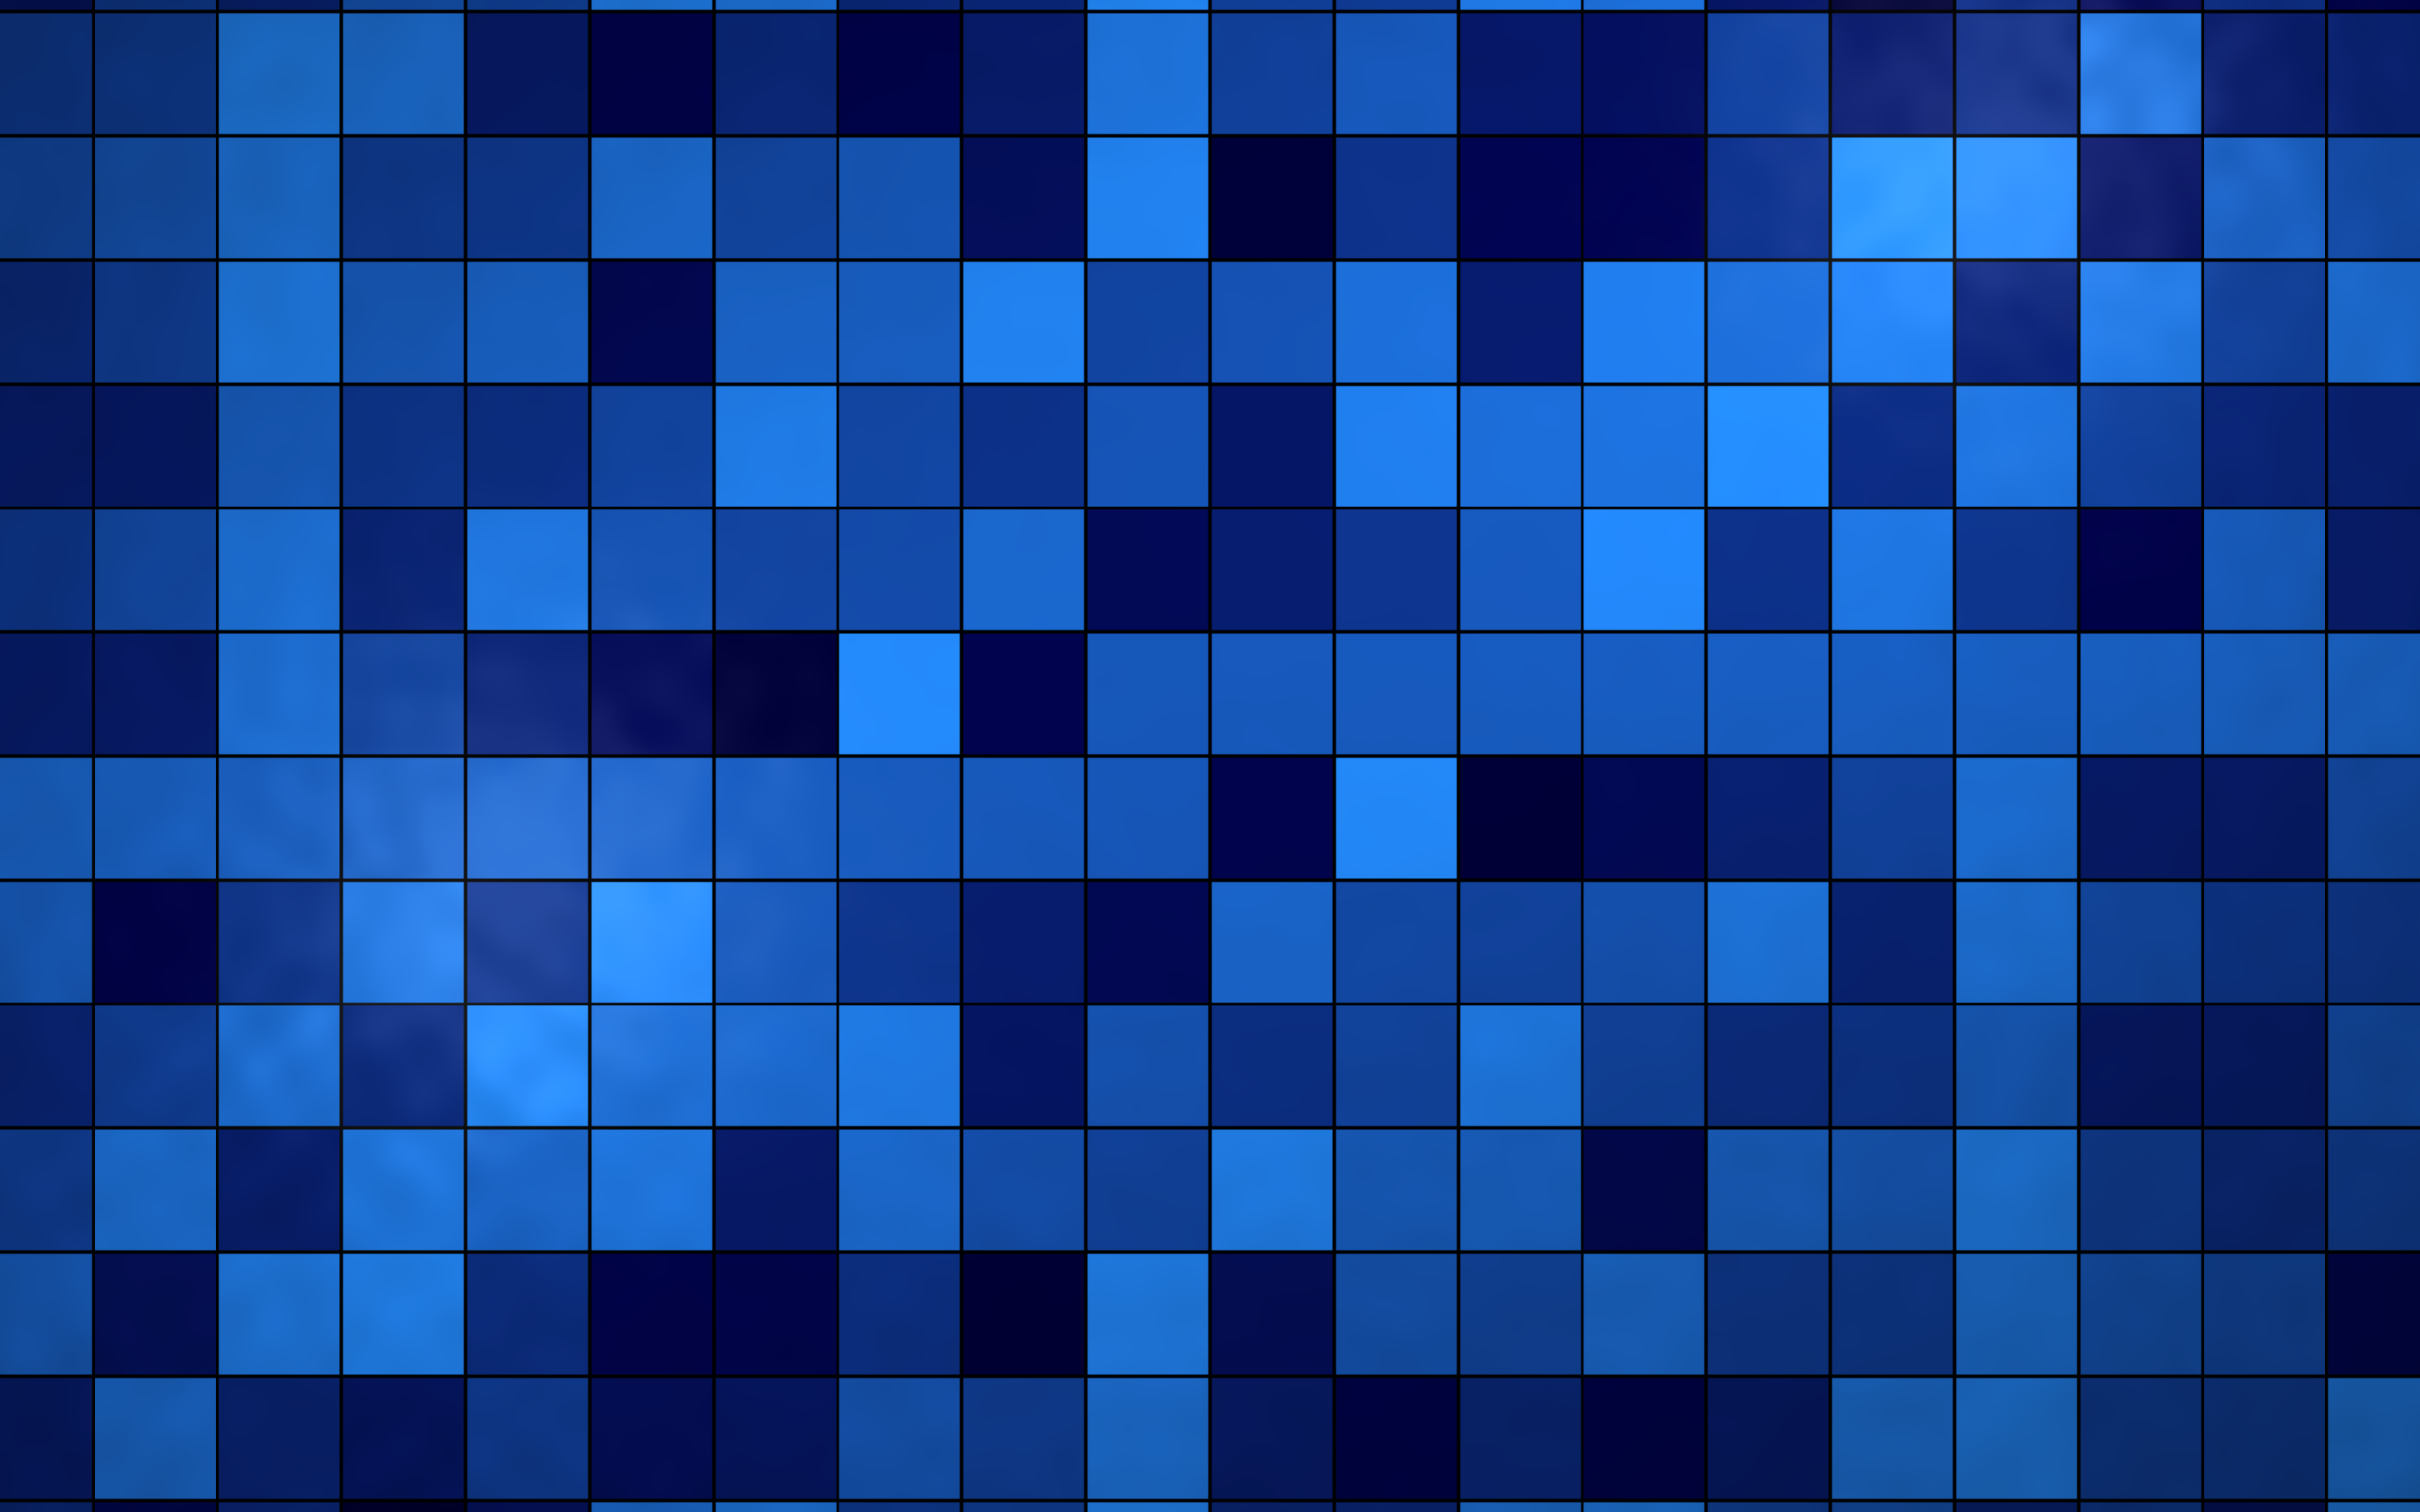 Blue Tiles And Other Wallpaper